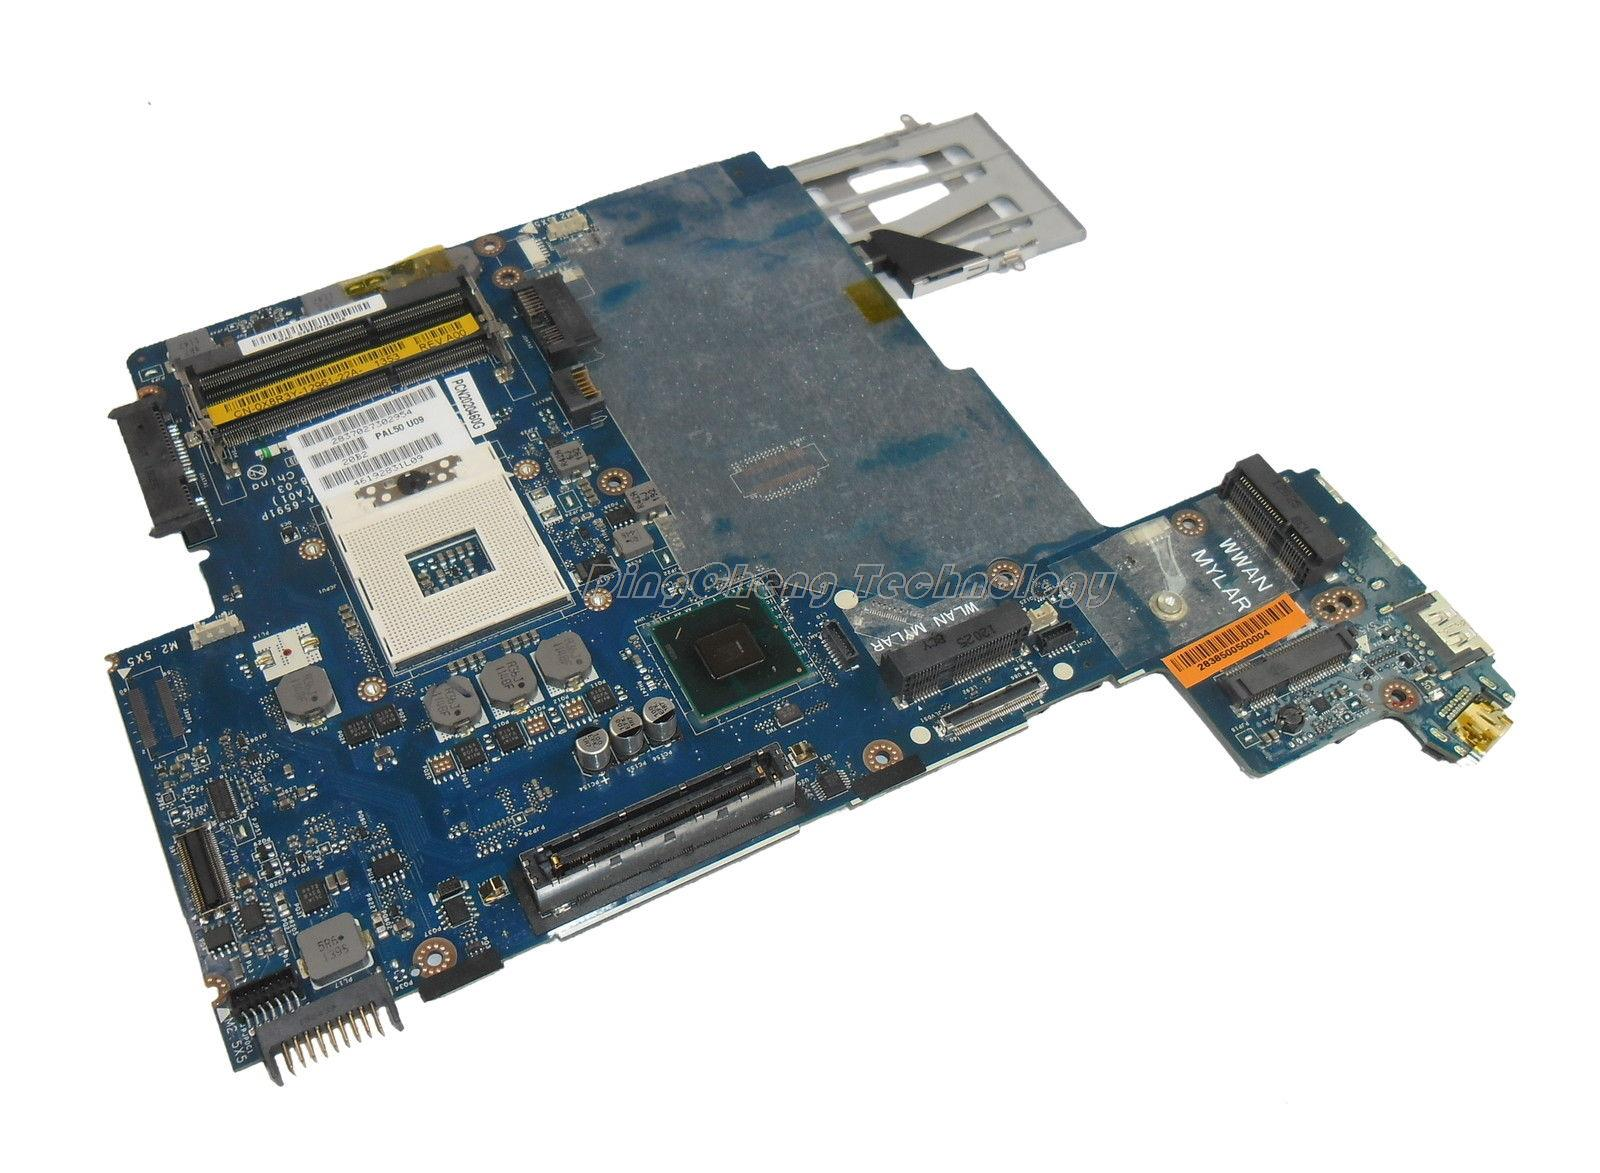 SHELI laptop Motherboard for dell inspiron E6420 LA-6591P CN-07TR3J QM67 DDR3 integrated graphics card 100% tested Fully schuller рамка для фотографий